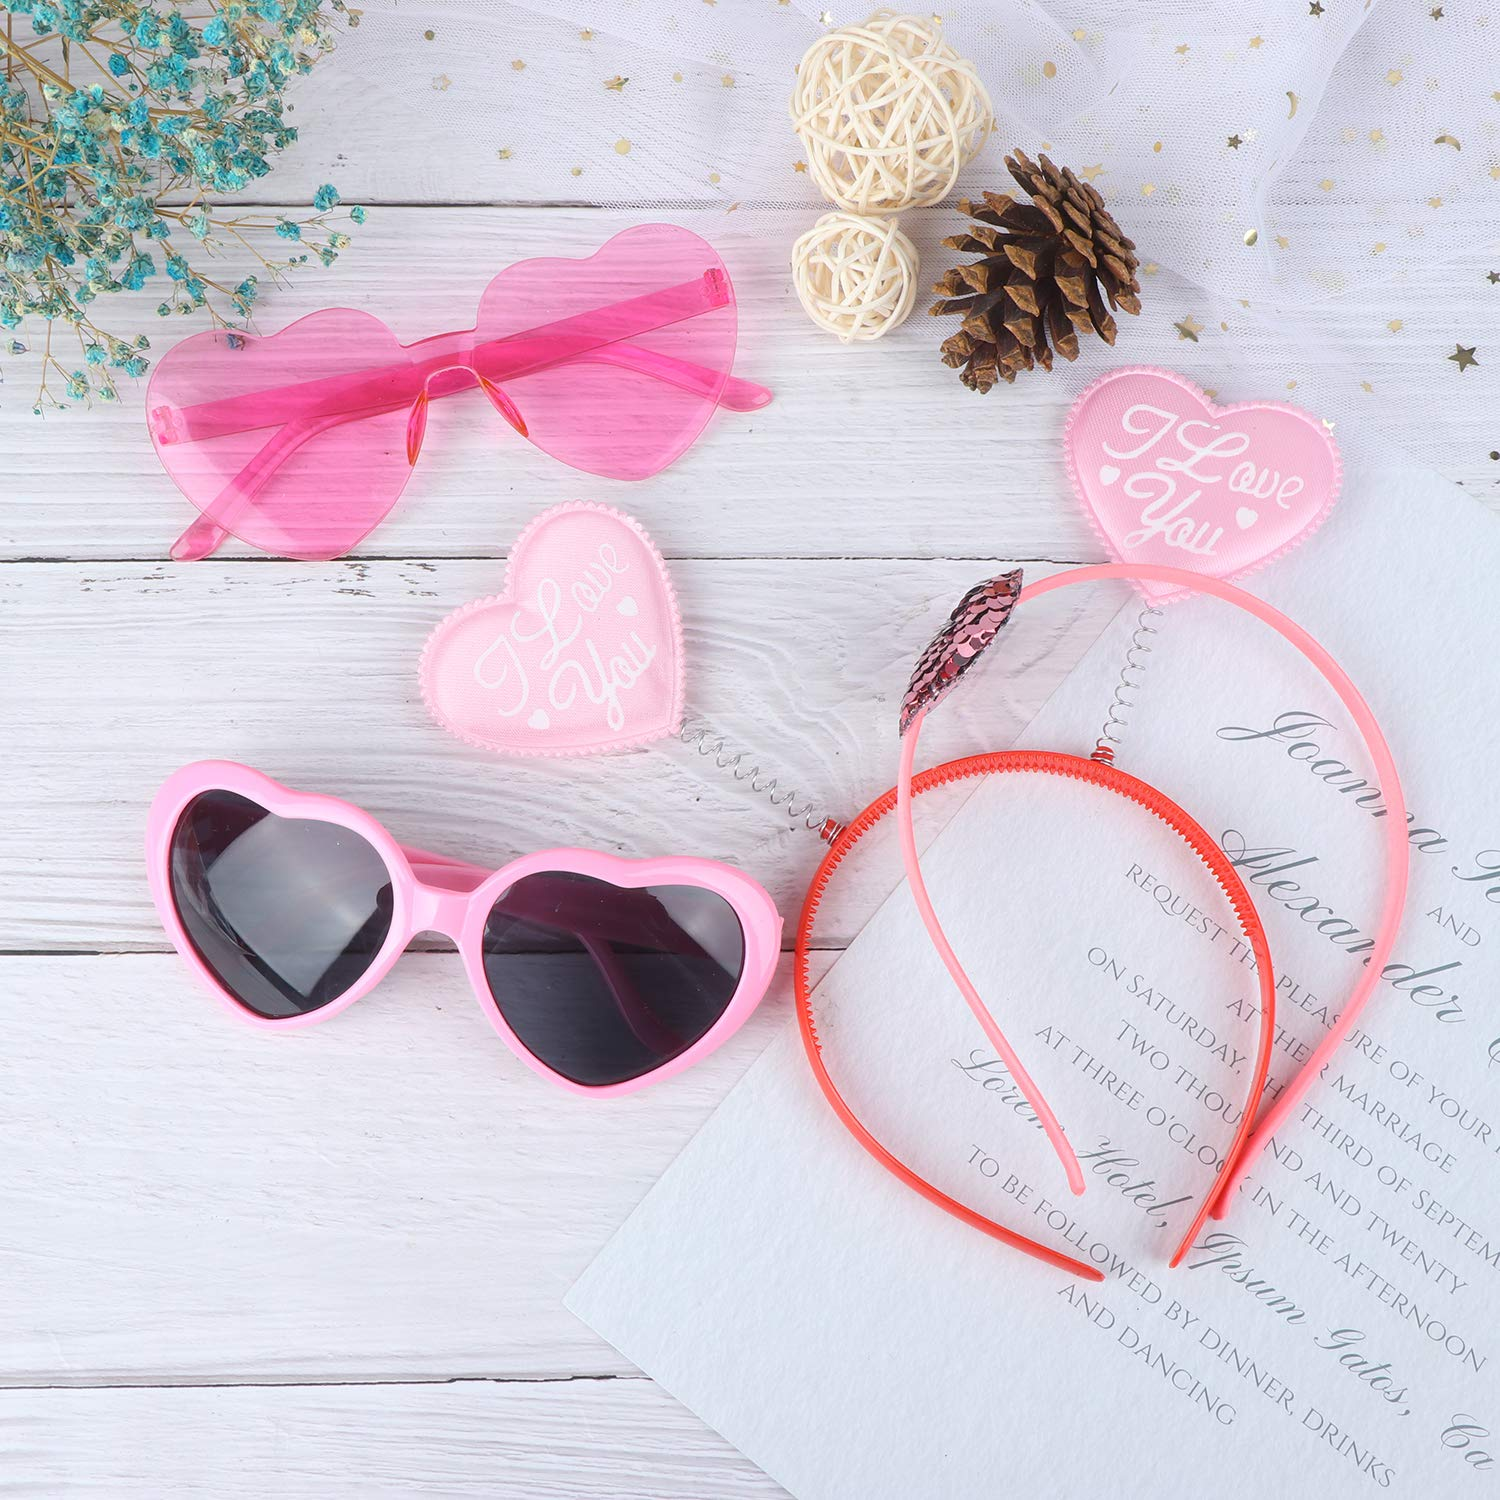 Olgaa 8 Pieces Valentines Day Heart Headbands Pink Heart Glasses Valentines Headboppers Glitter Heart Headbands Pink Sunglasses for Valentine Party Wedding Birthday Holiday Party Accessory